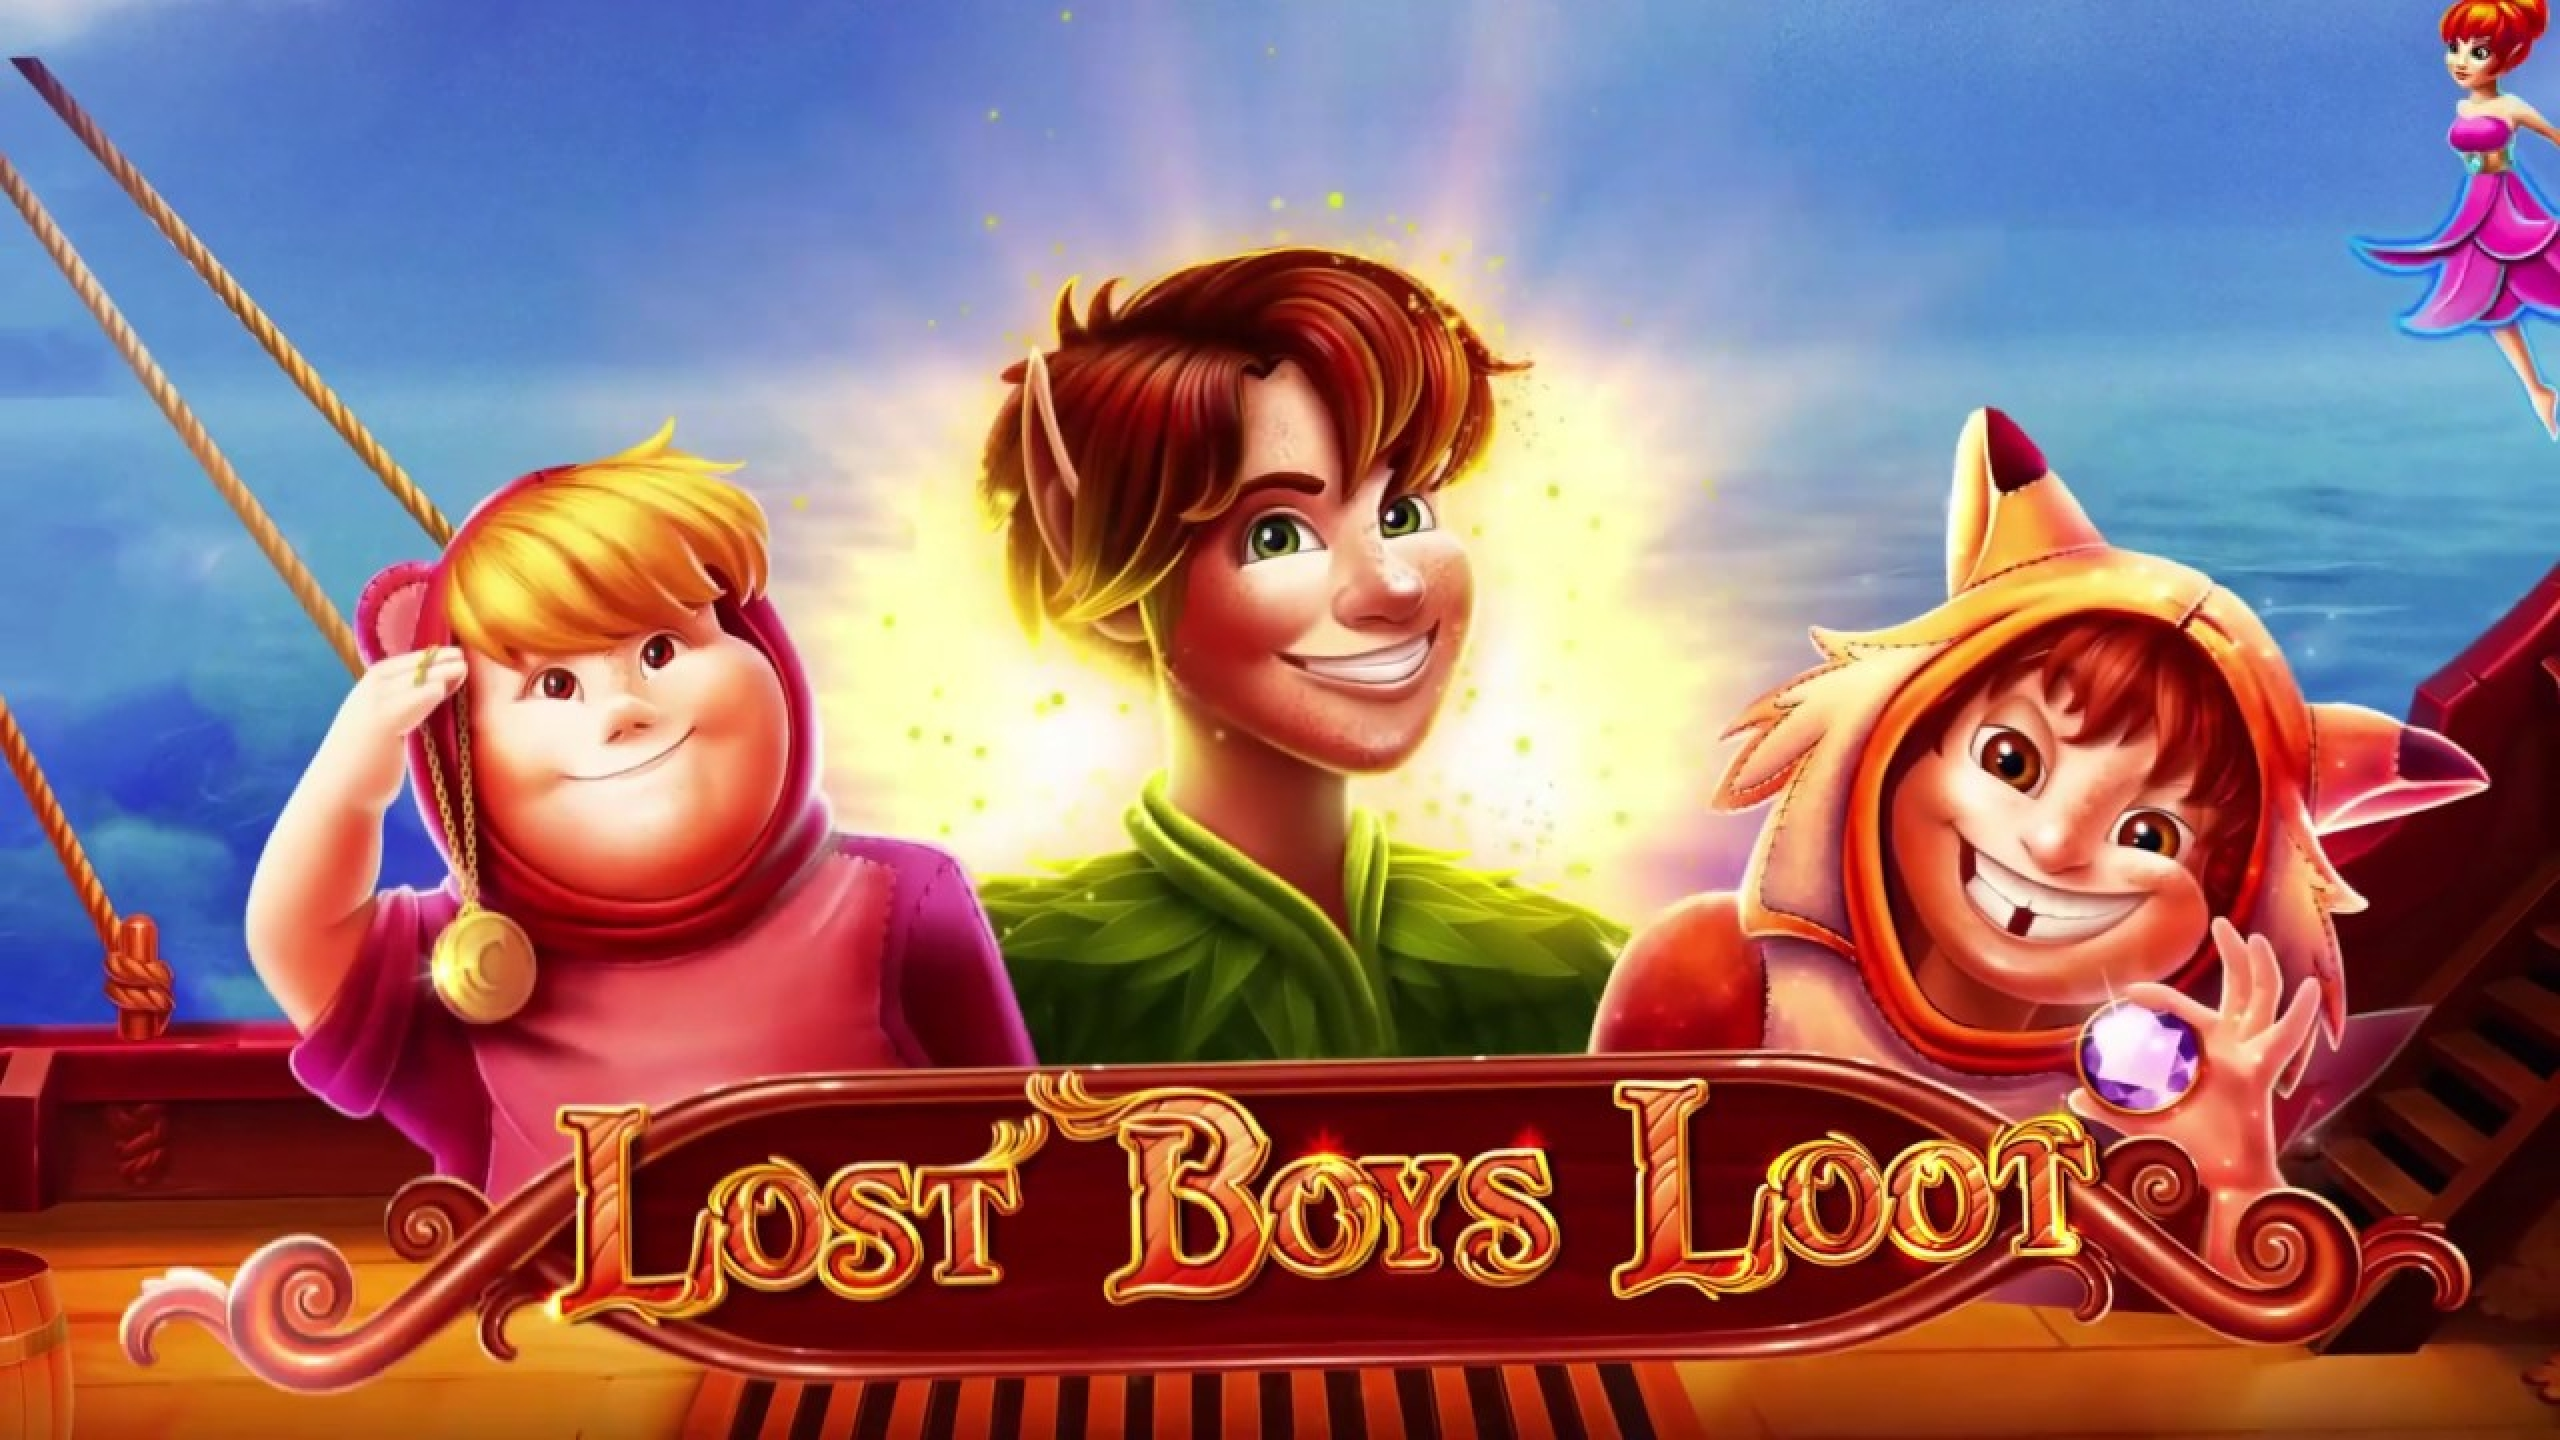 The Lost Boys Loot Online Slot Demo Game by iSoftBet